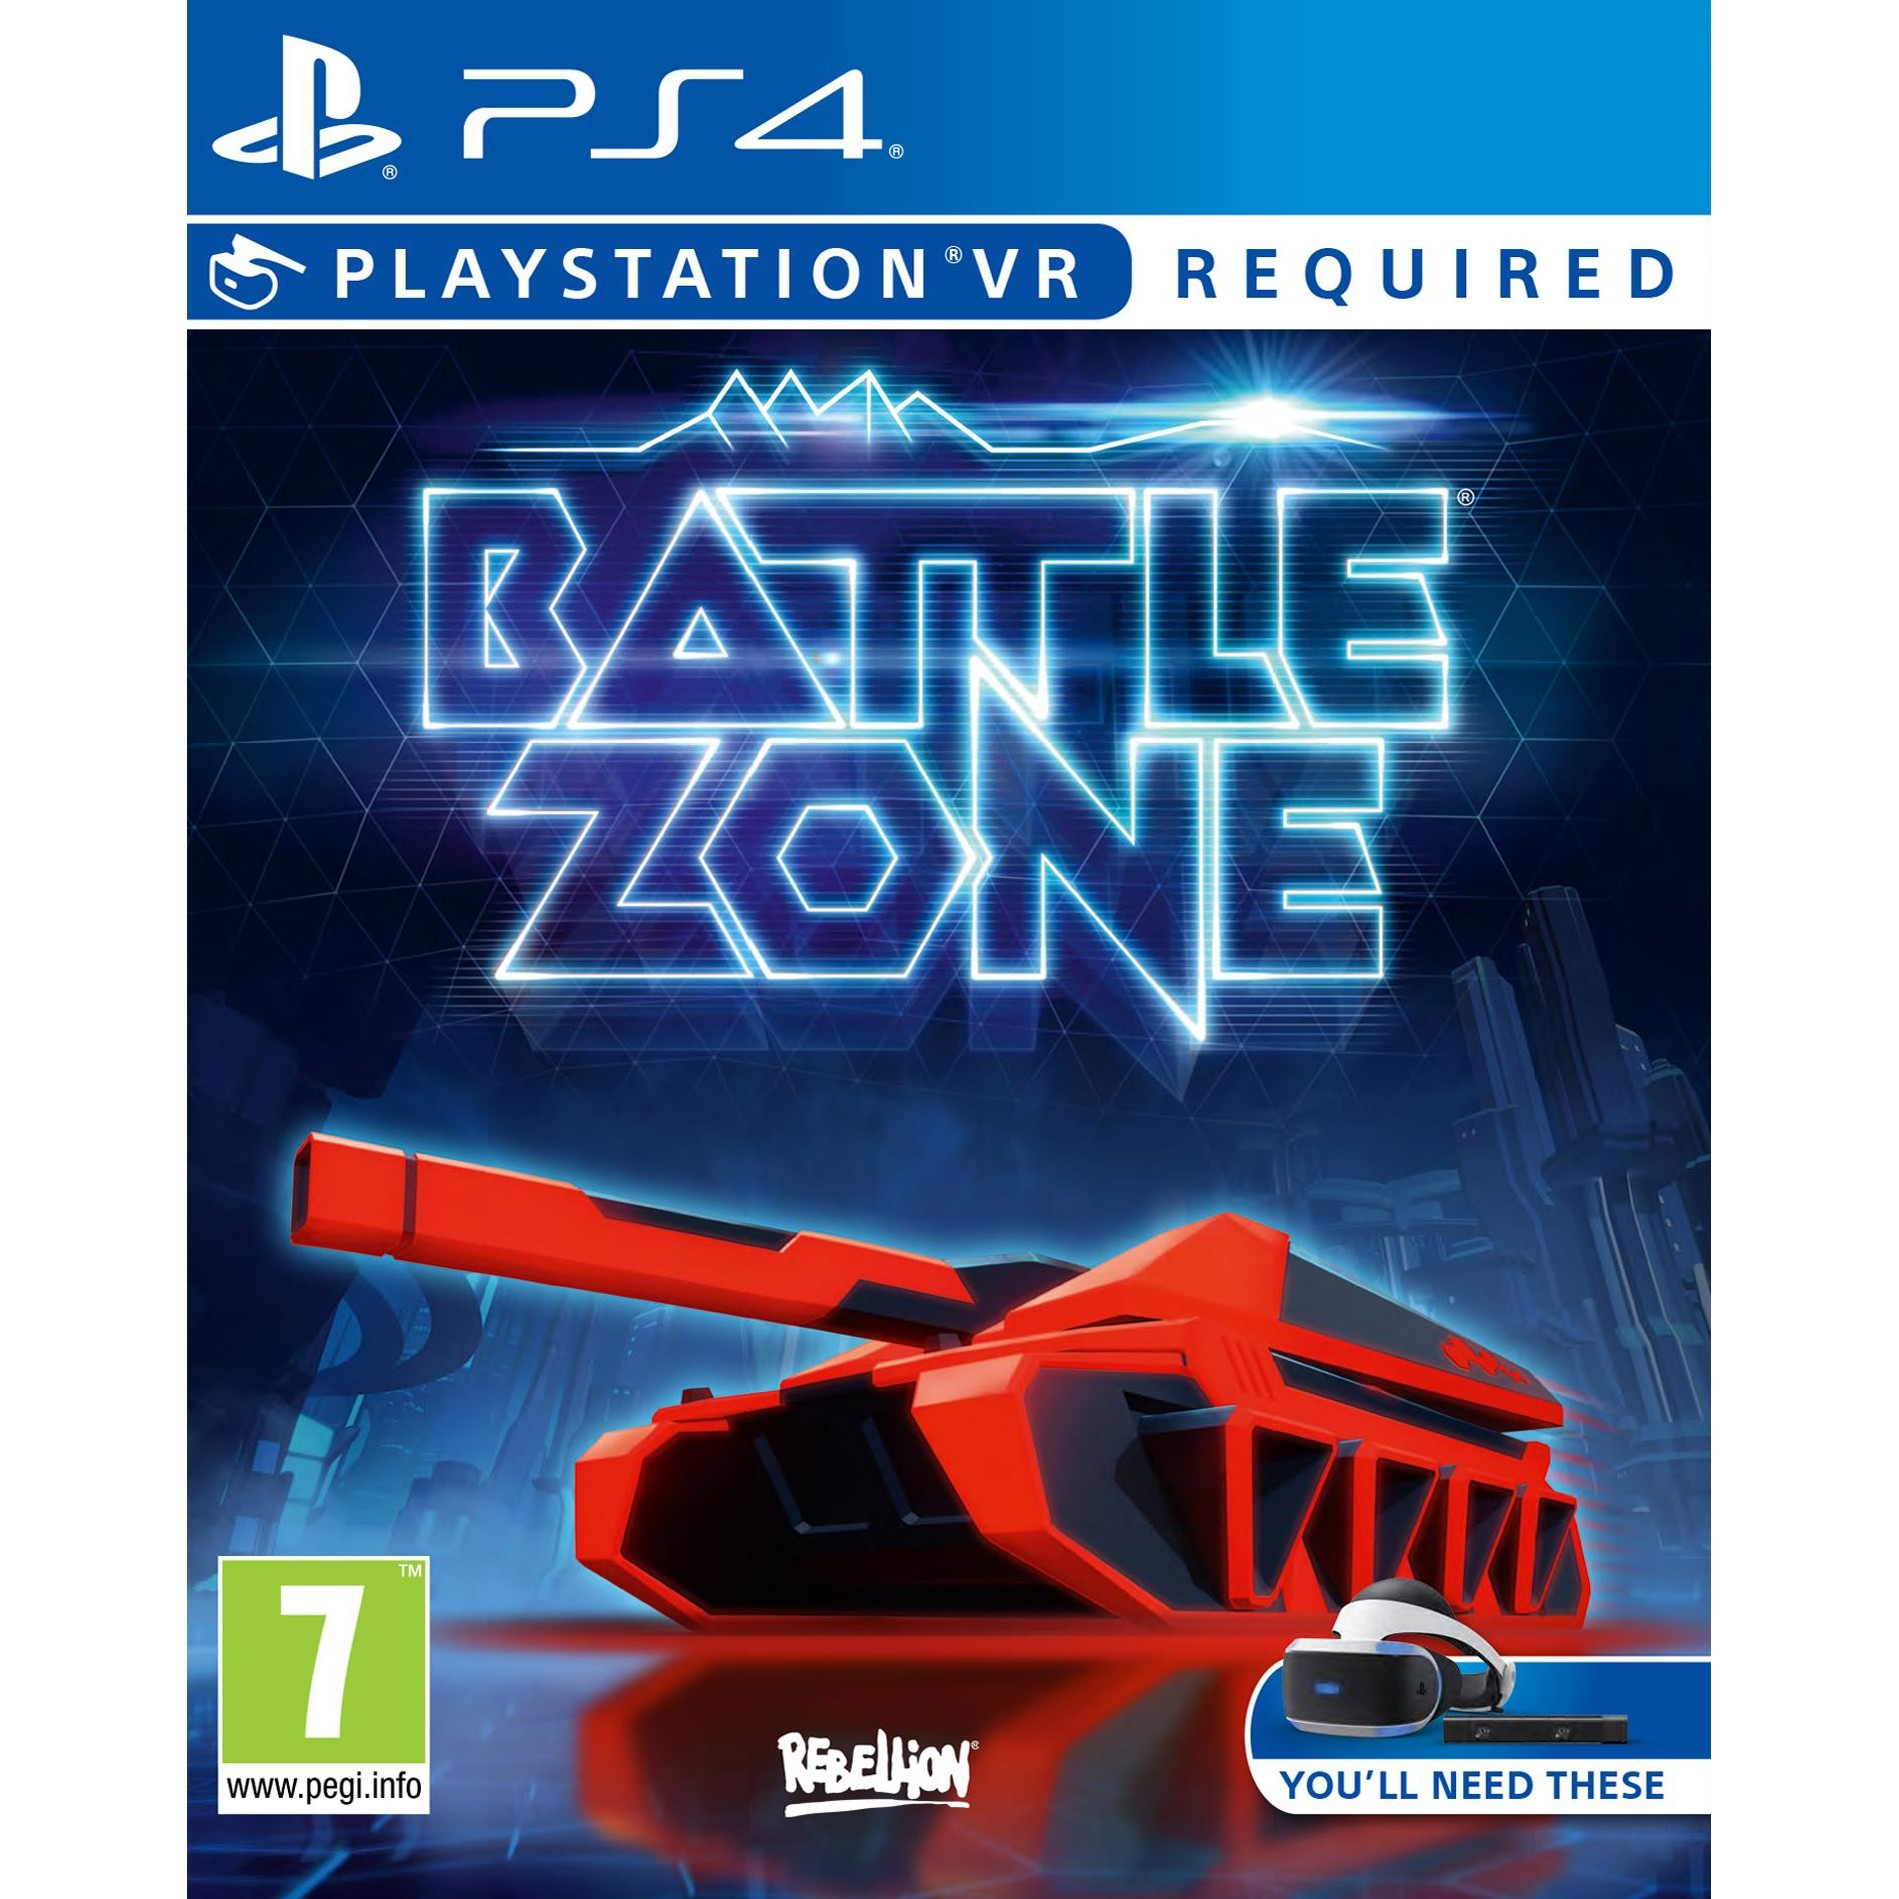 1006255 : Battlezone VR (PS4)